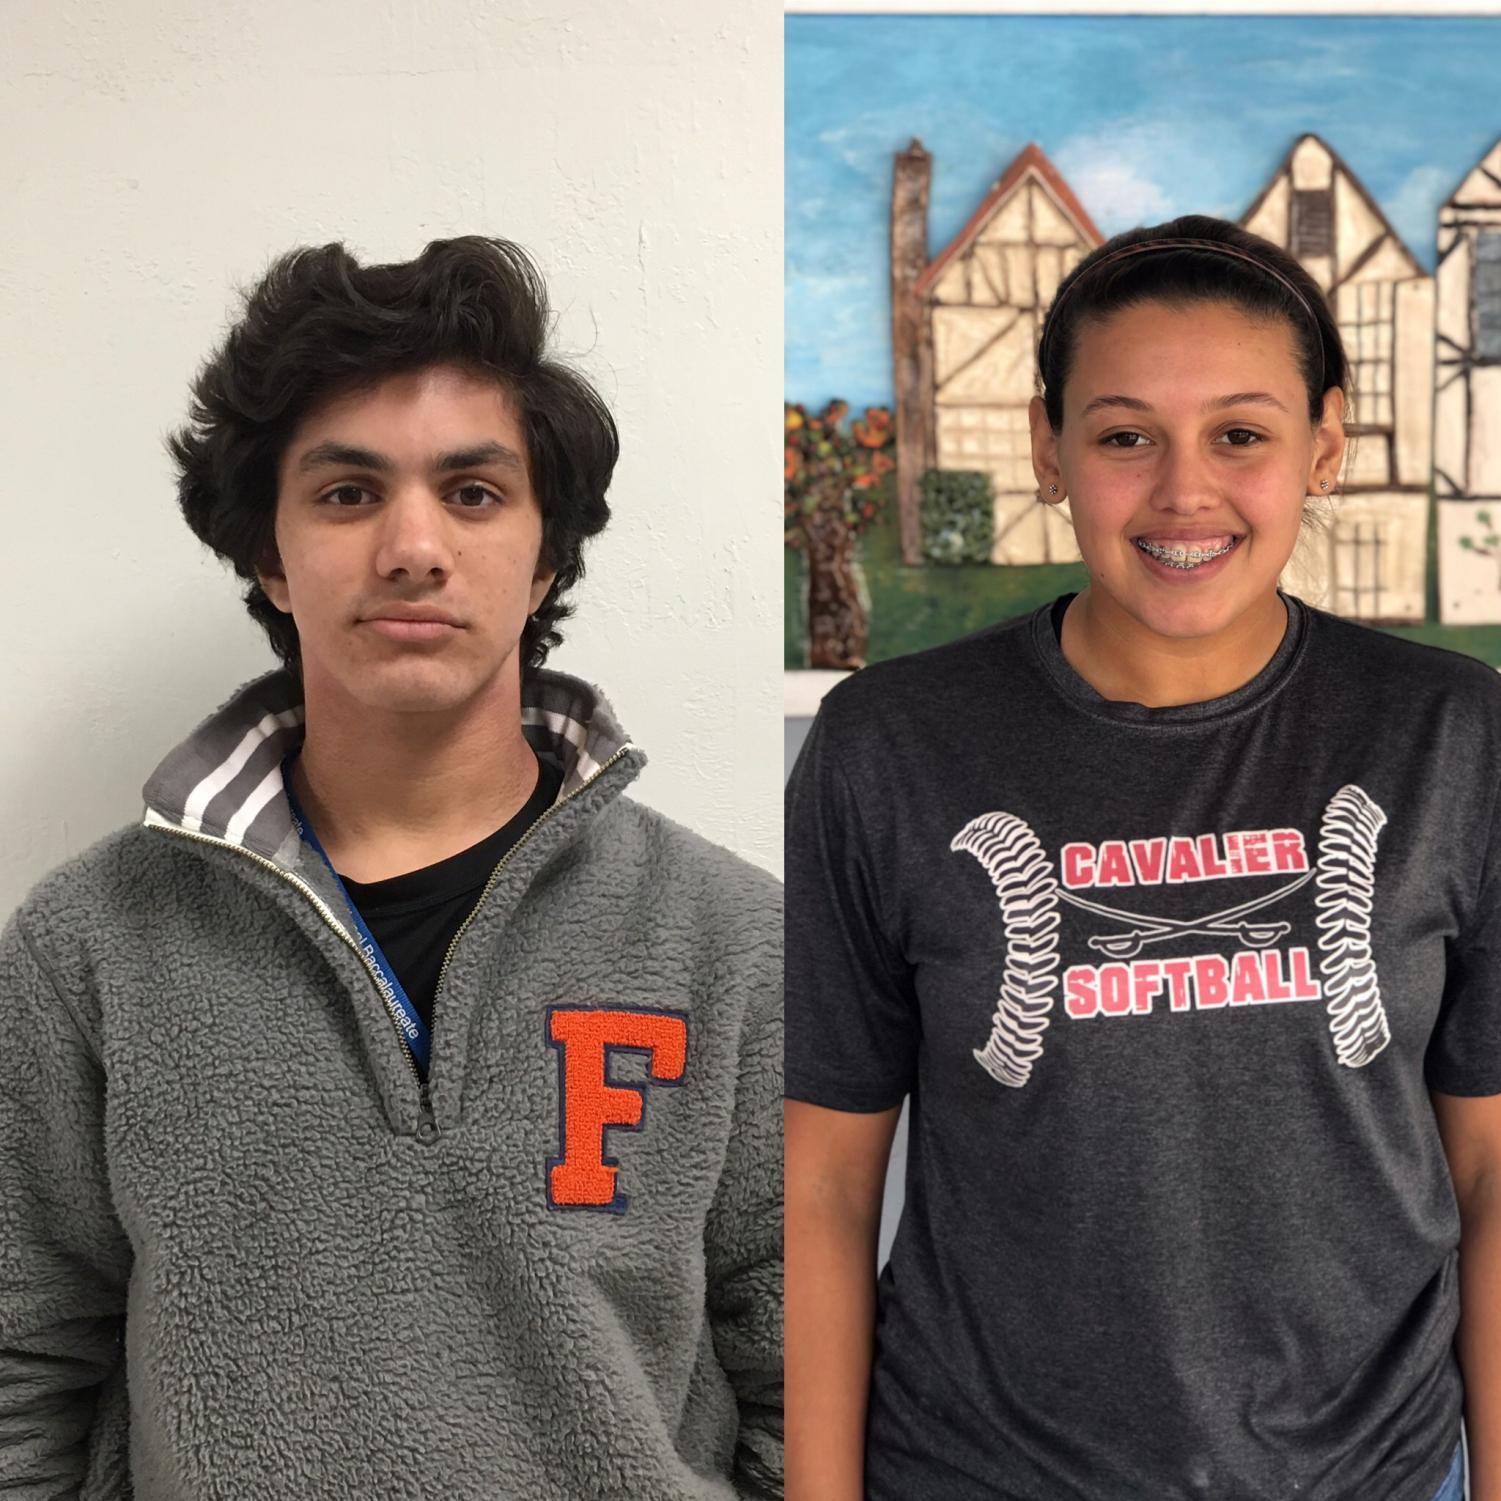 The two athlete spotlights, AJ Vazquez and Angelina Bonilla, for the time spanning between Jan. 7 and Jan. 18.